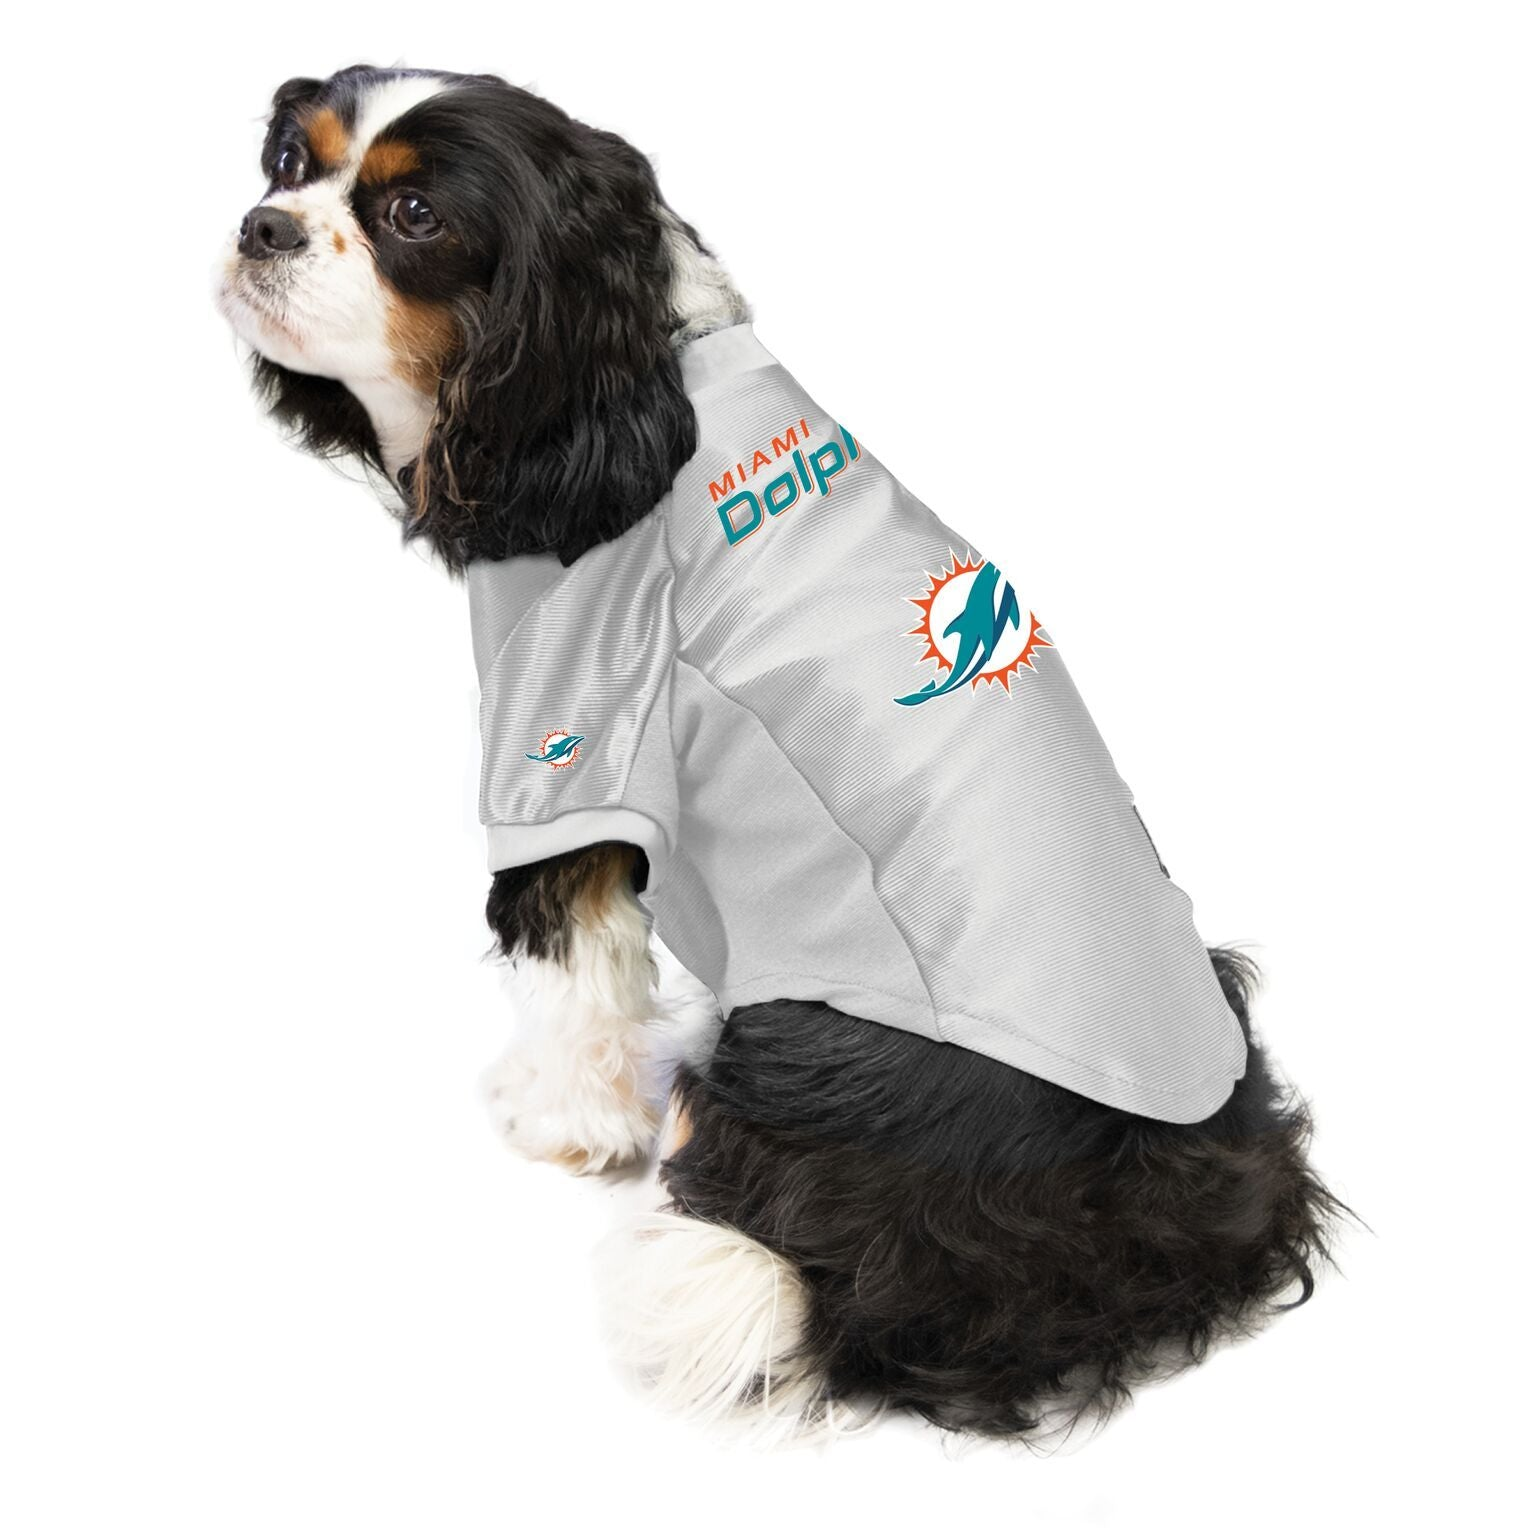 Dolphins Outfit for Dogs